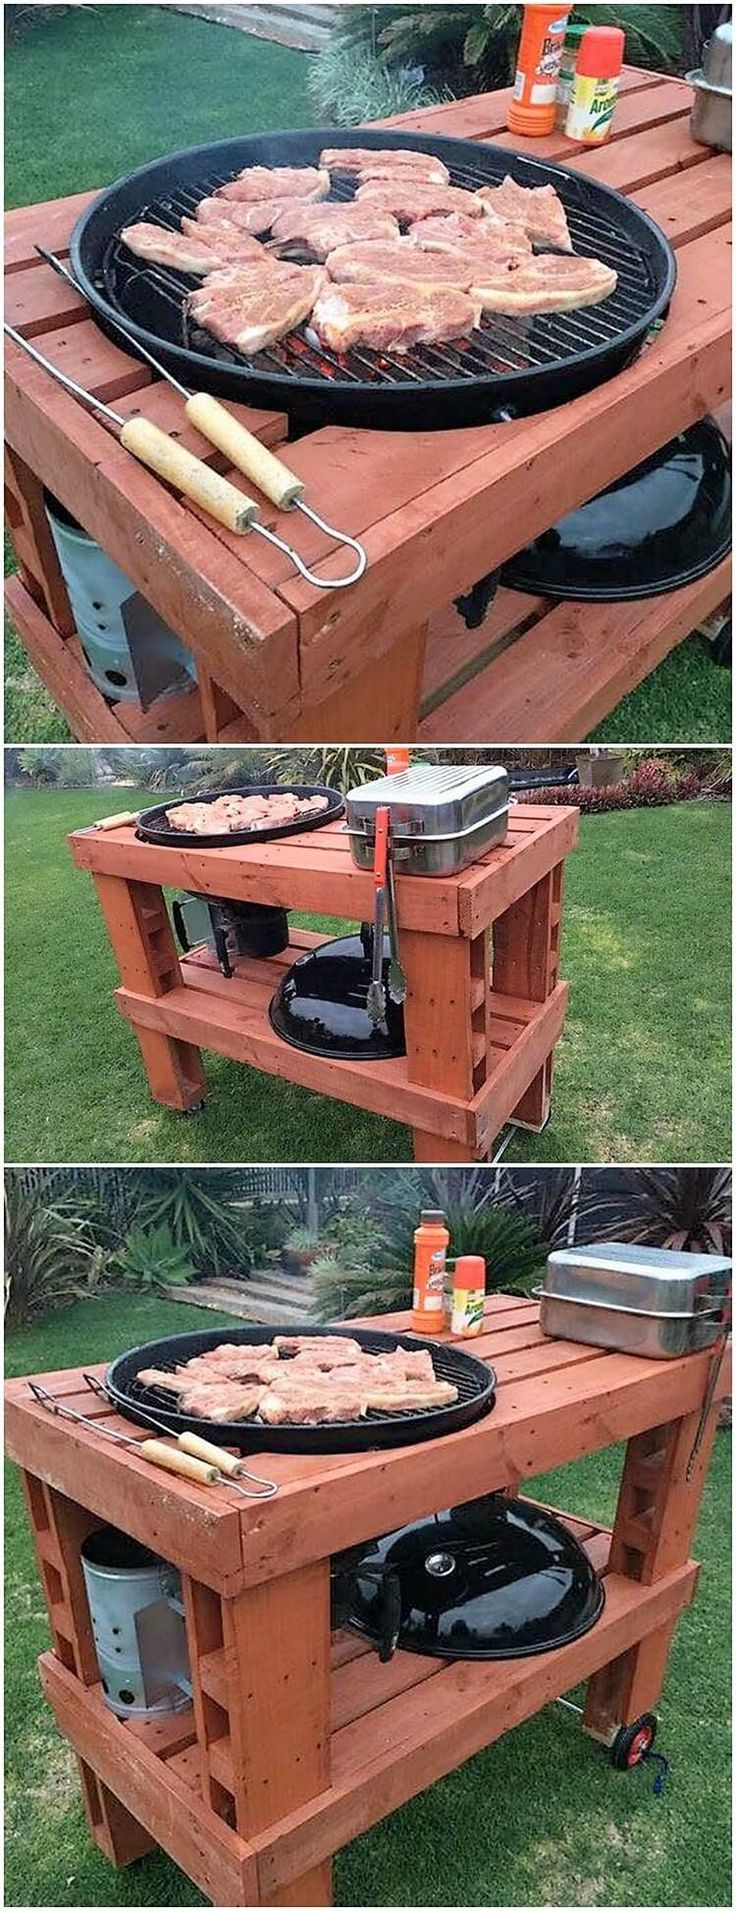 Setting the use of wood pallet for the innovative grill table designing is another one of the interesting concept to try out for your home. As it is all visible out in this image, you will encounter the square shaped structure of the wood pallet that is proportionally set with the pallet grill design over the top of it.